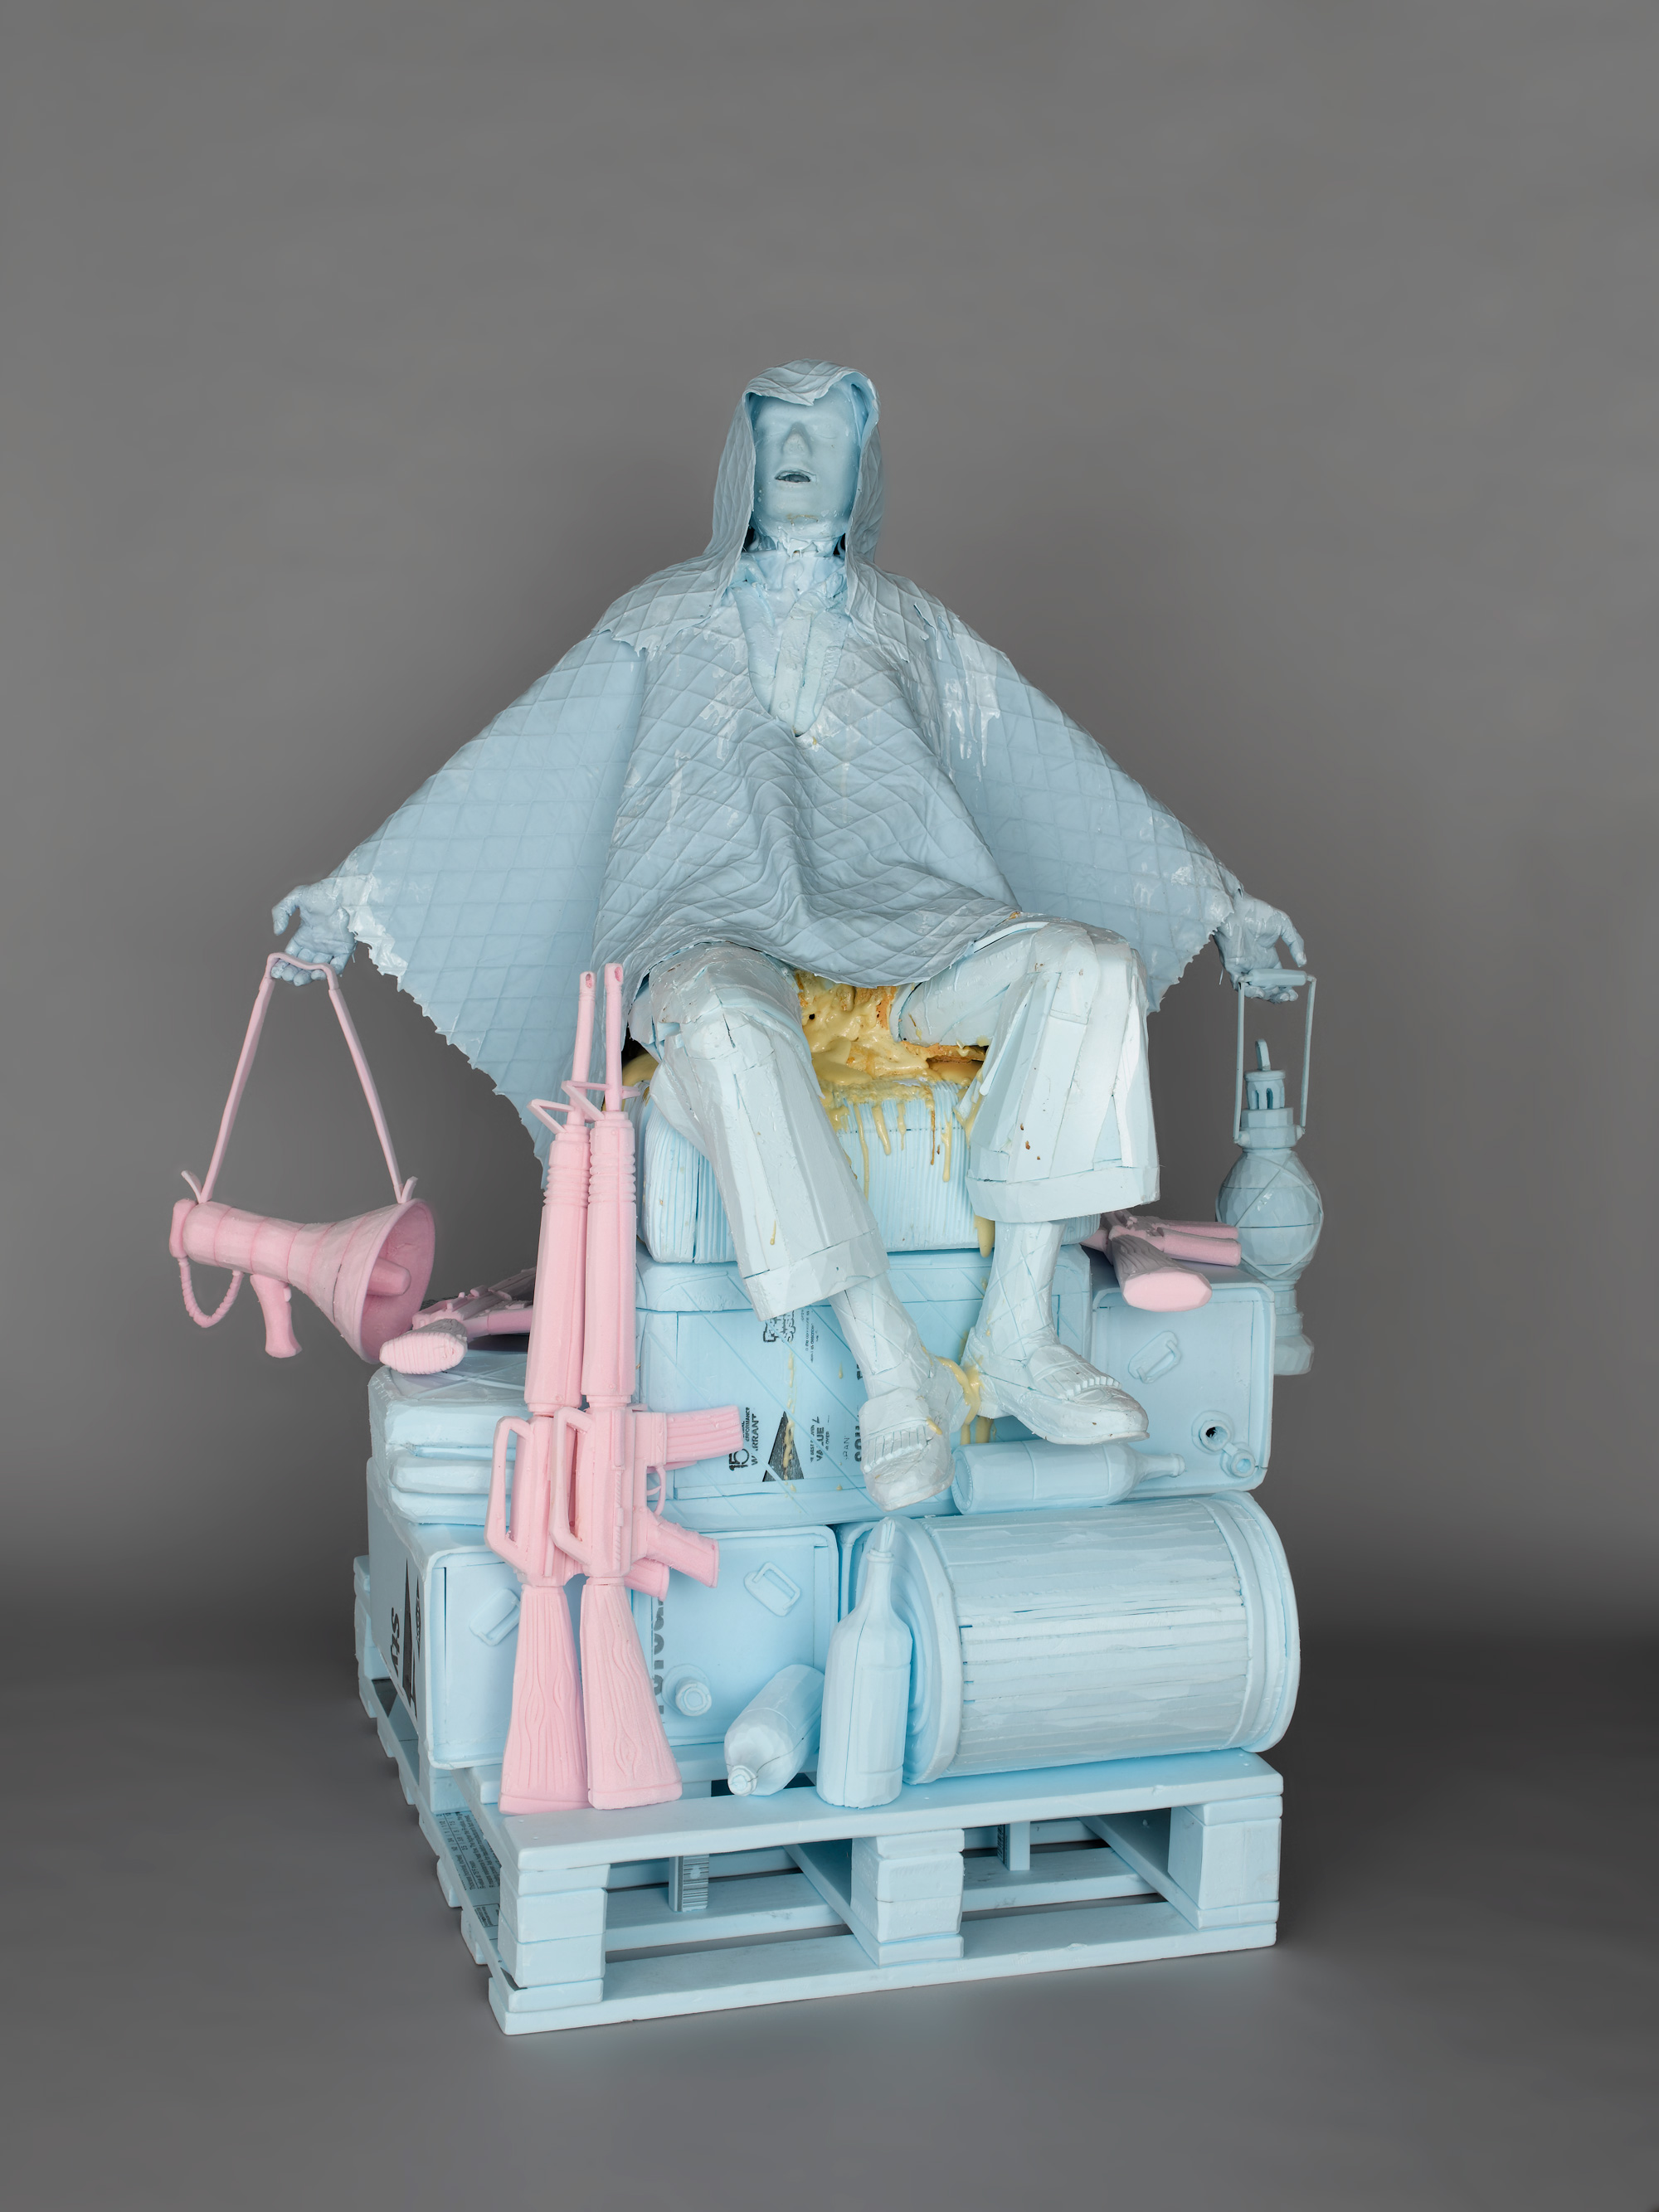 STEREO LOVE SEATS HOT WHEELS 2004 Styrofoam, polyurethane foam, silicone rubber 67 x 39.4 x 39.4 in (170 x 100 x 100cm)  2018 Marc Straus Gallery